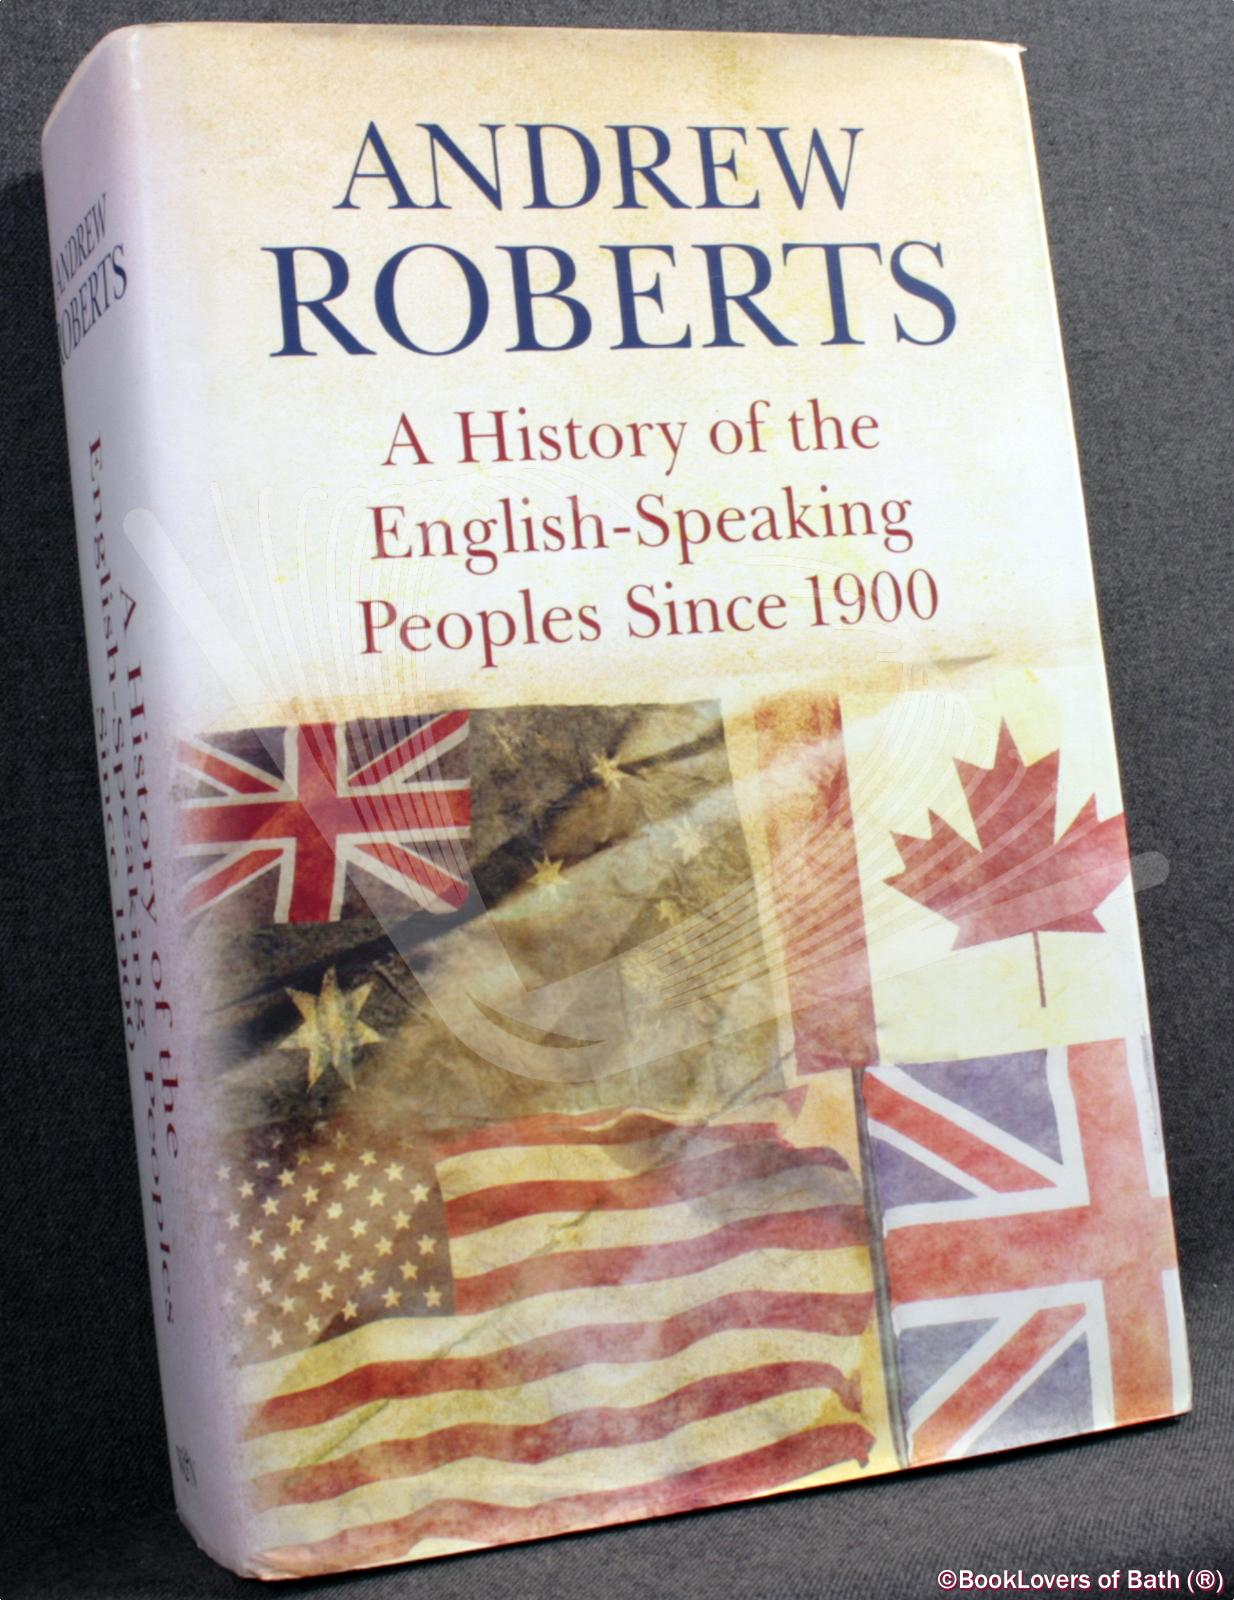 A History of the English-Speaking Peoples Since 1900 - Andrew Roberts